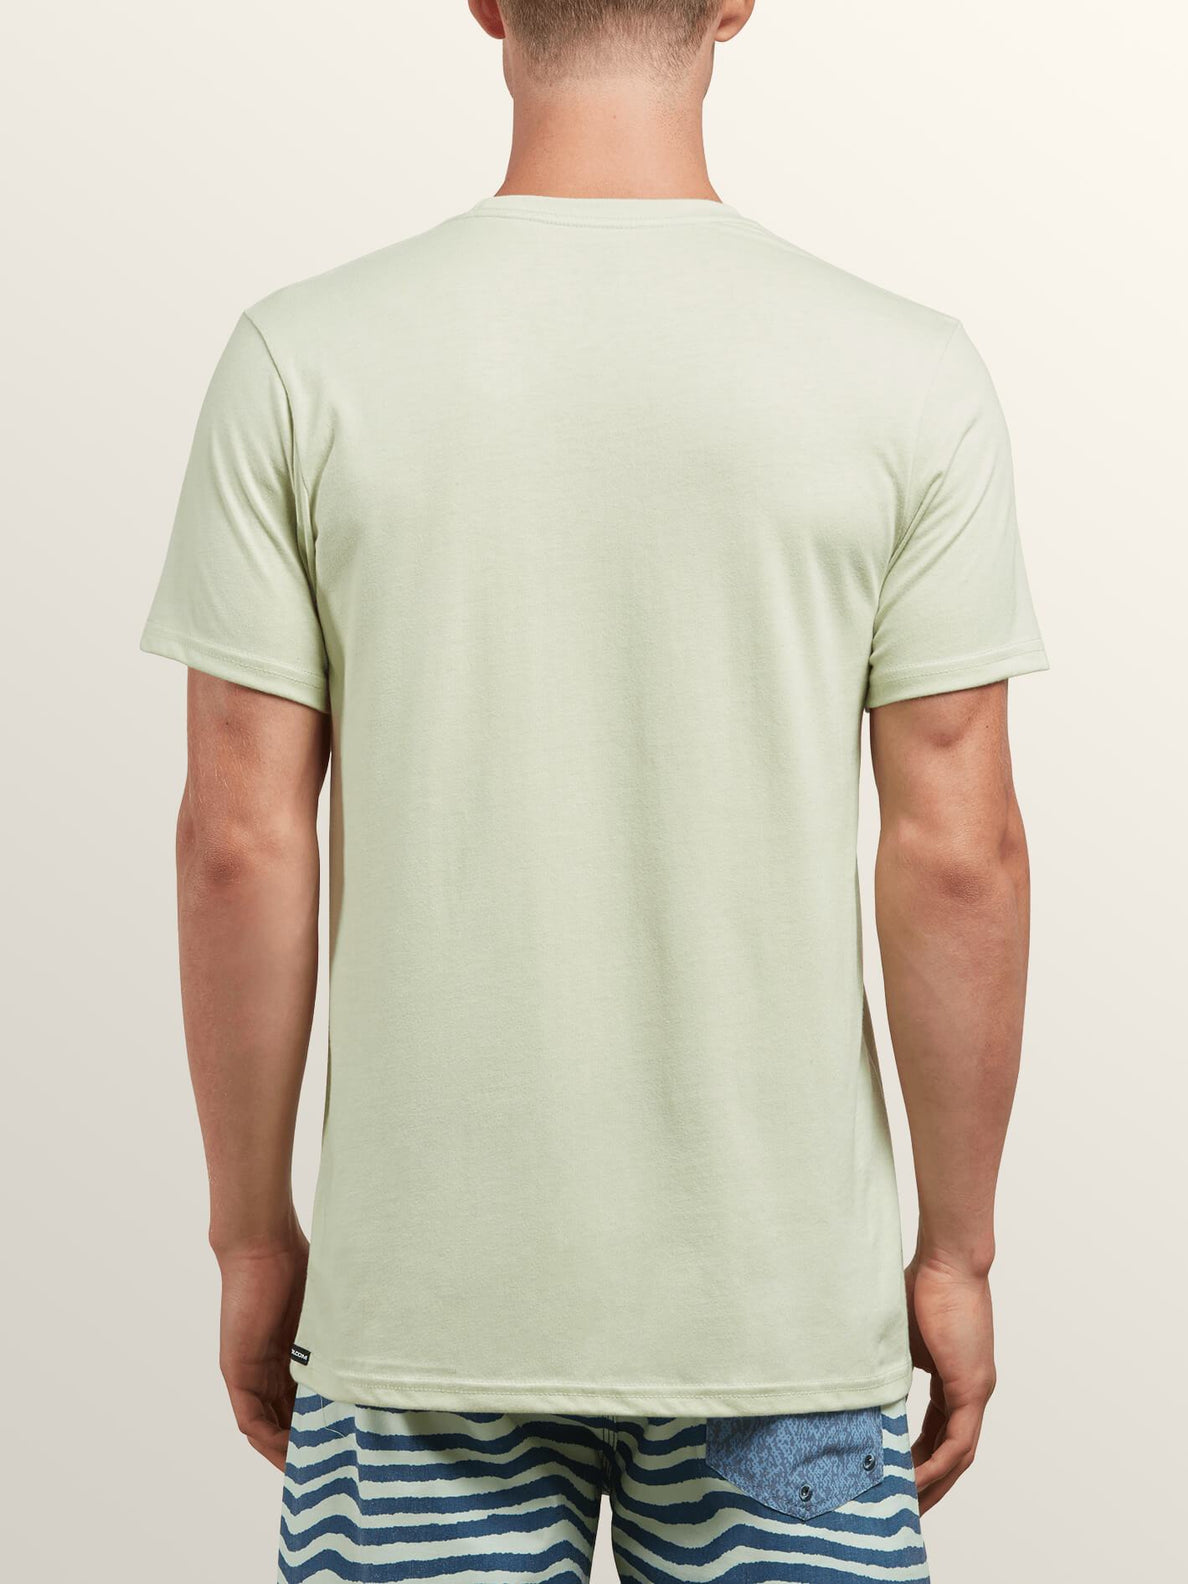 Bold Short Sleeve Tee In Mist Green, Back View